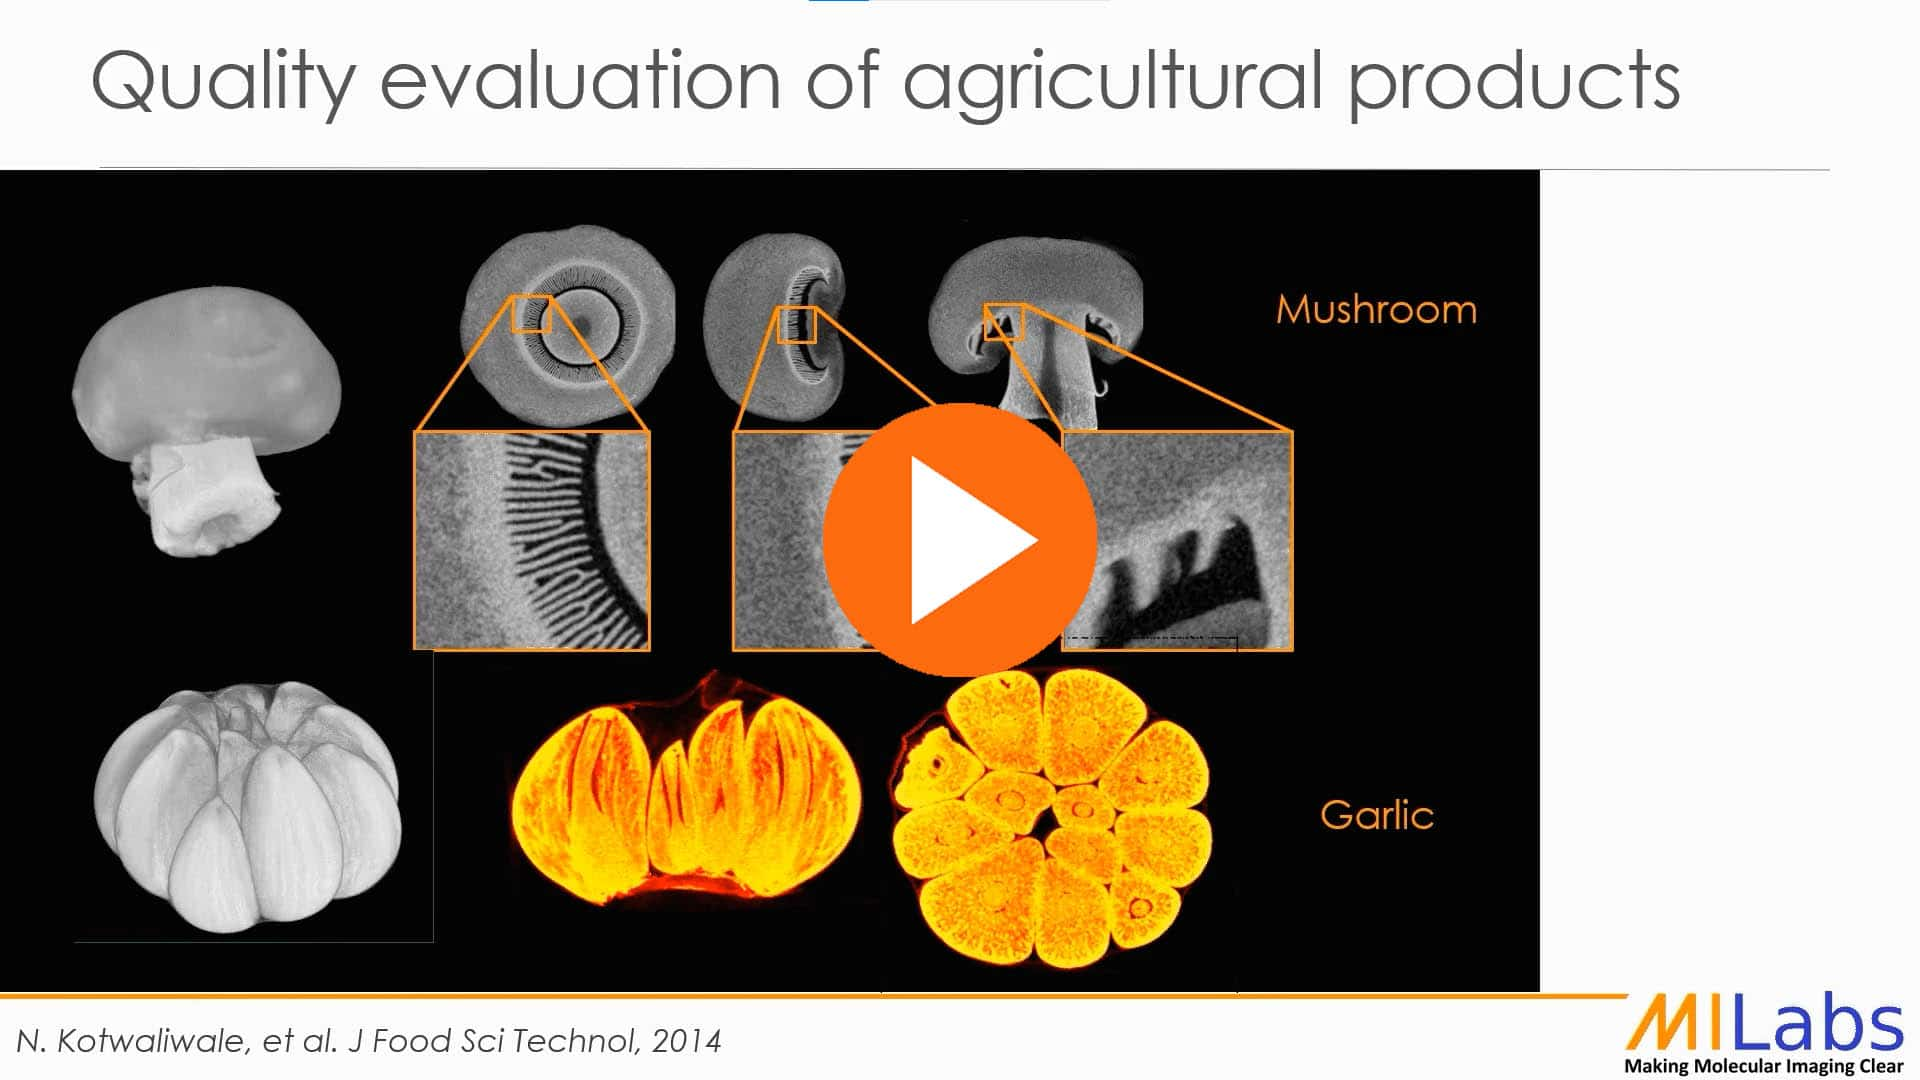 NDT quality evaluation of agricultural products